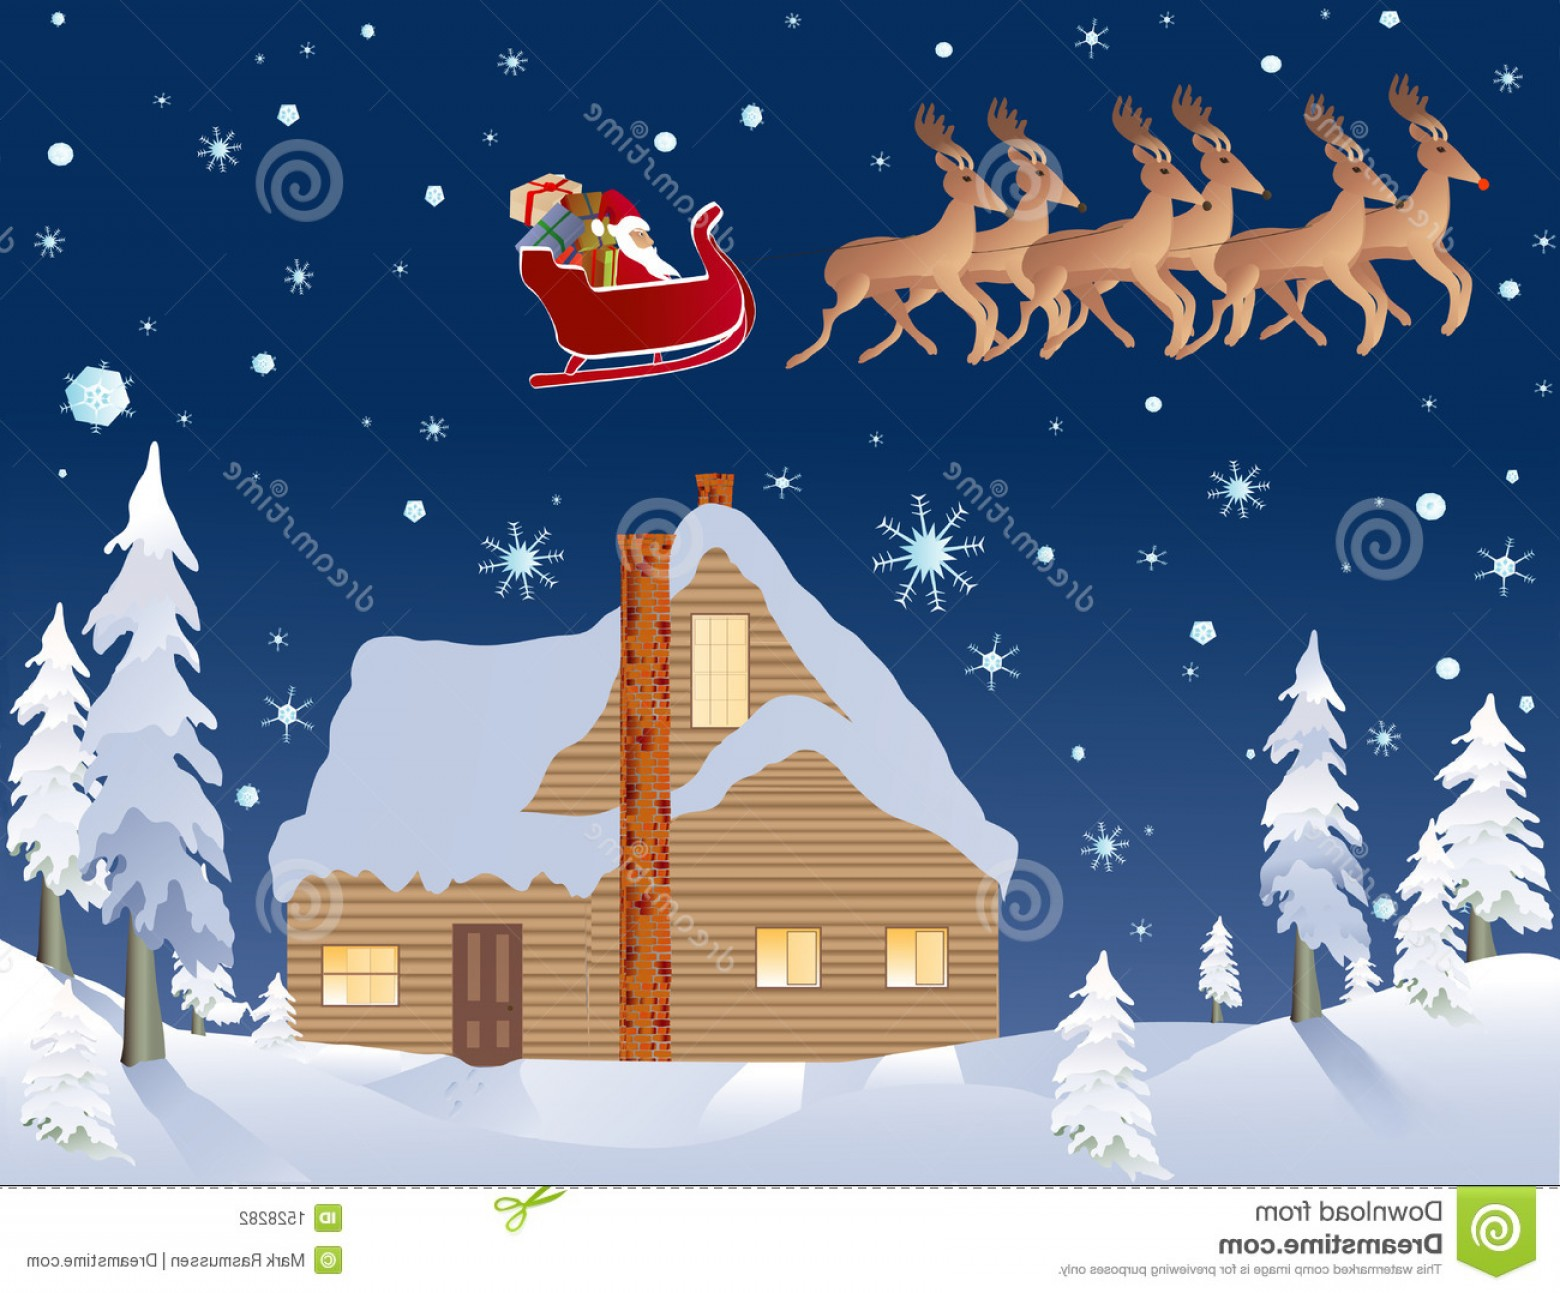 Vector-Based Christmas: Stock Photography Santa Reindeer Cabin Woods Christmas Eve Image